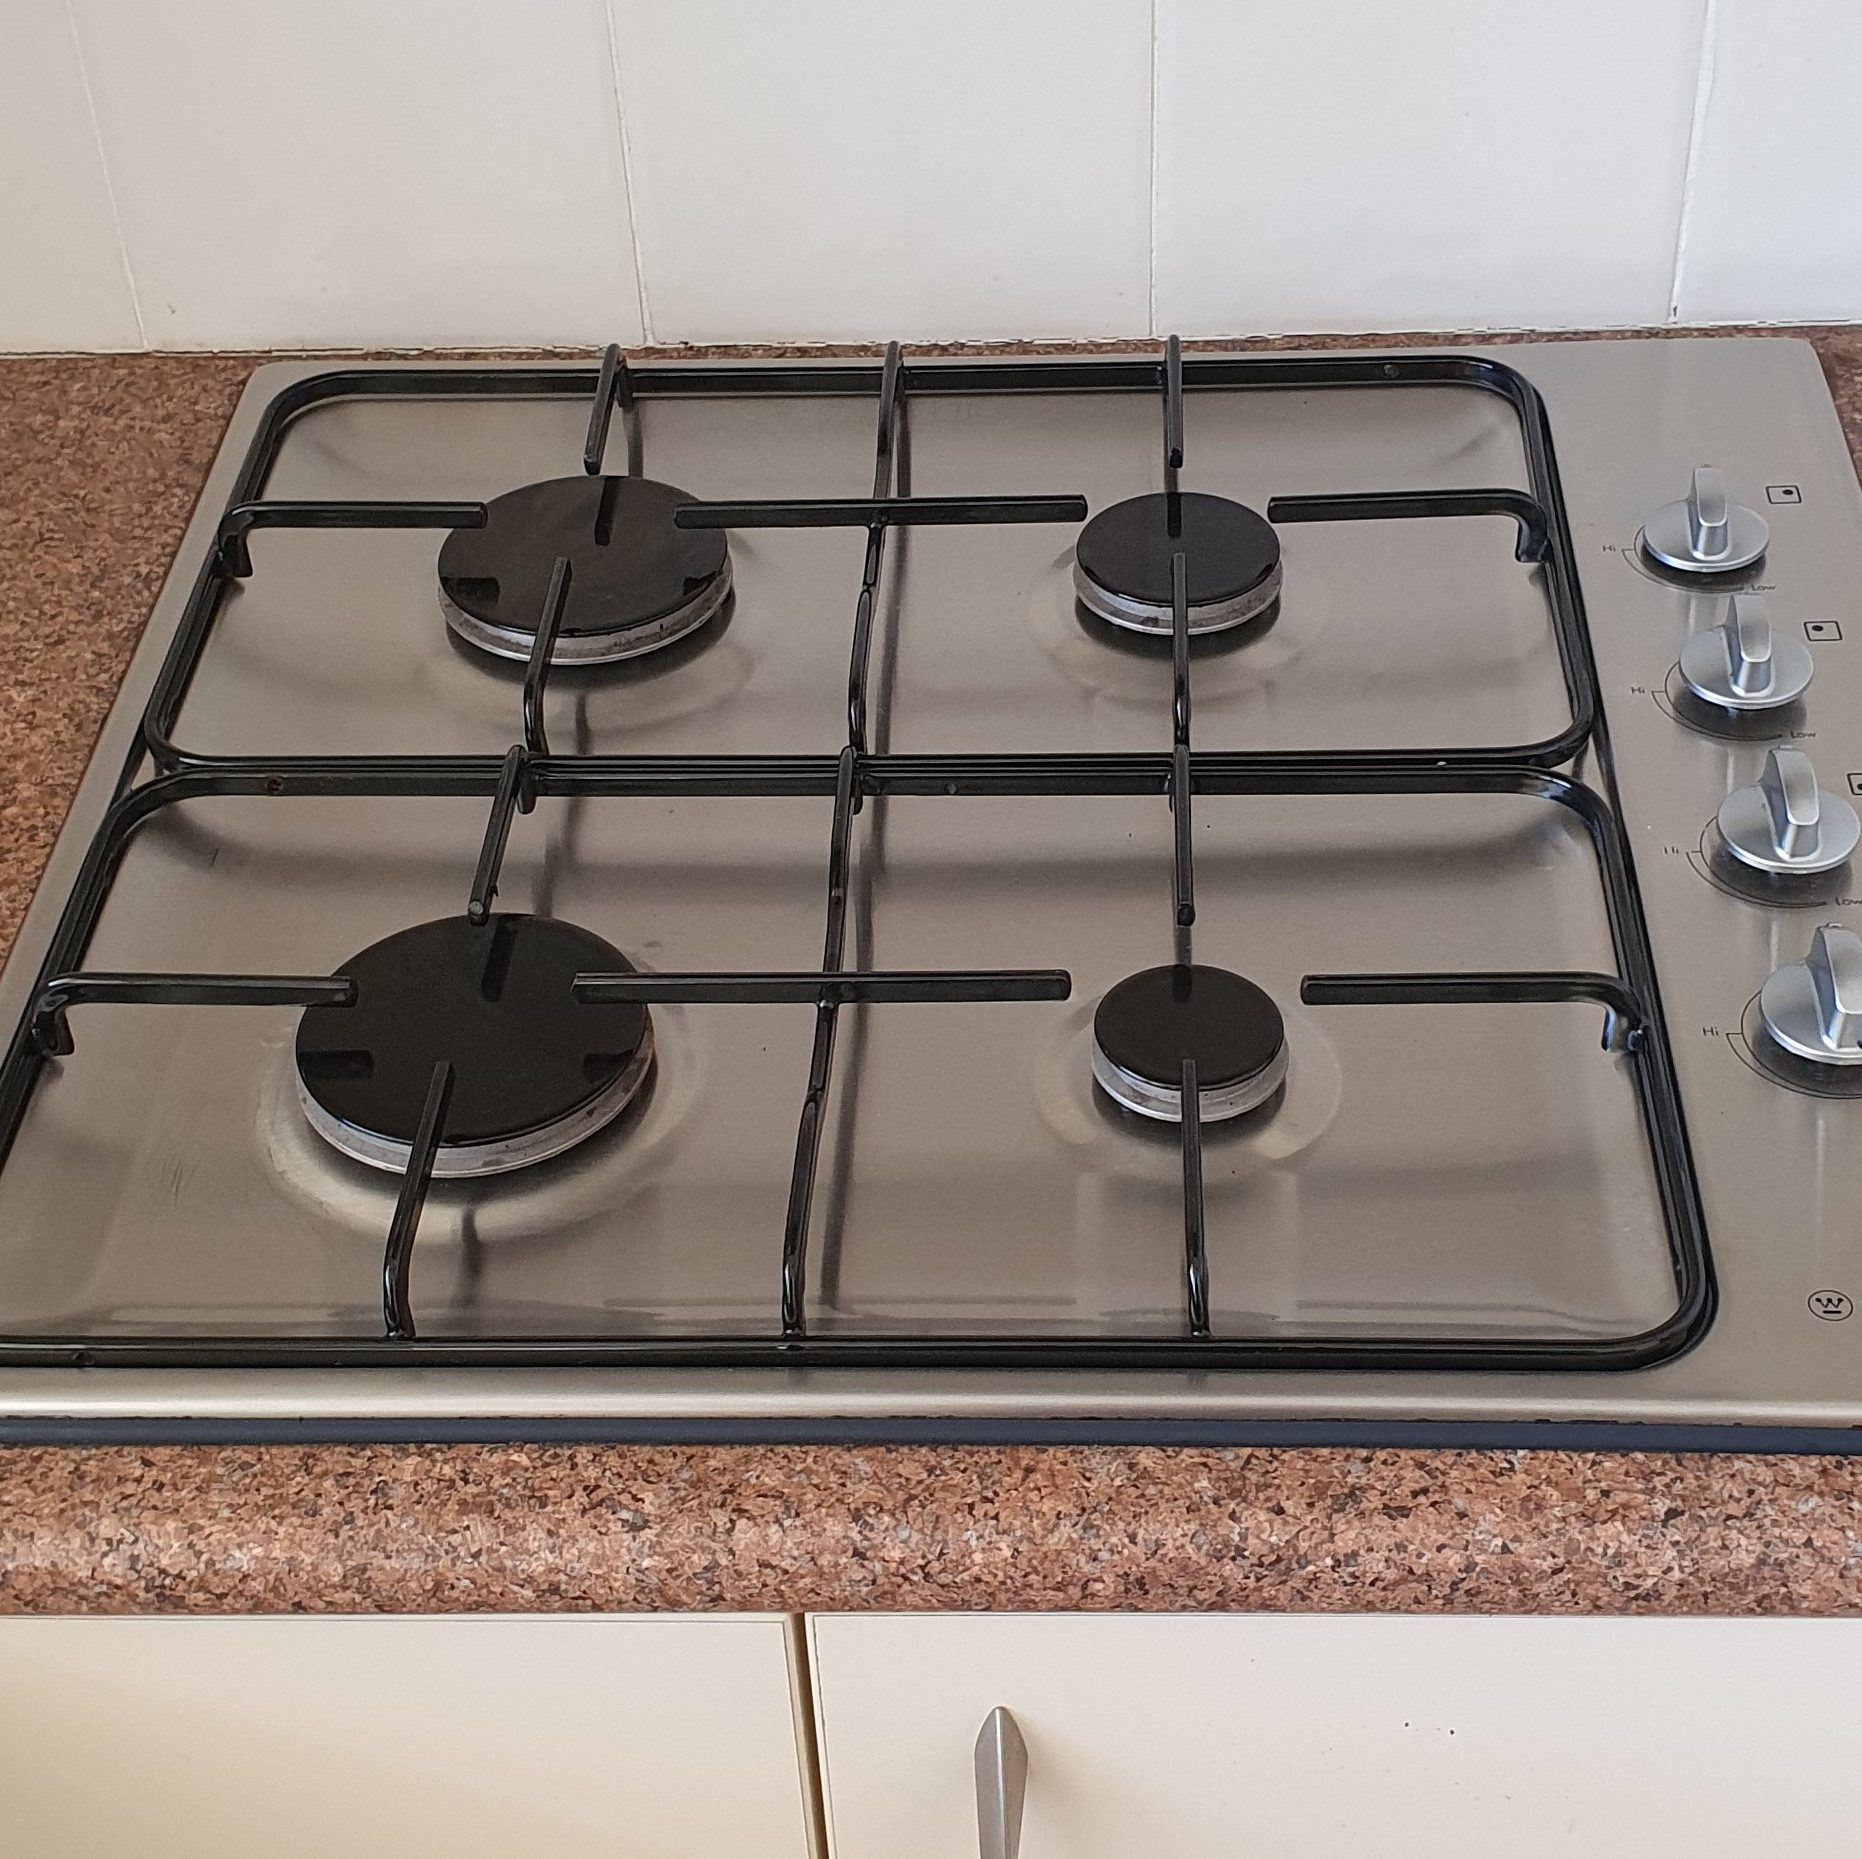 Stove Cleaning Image